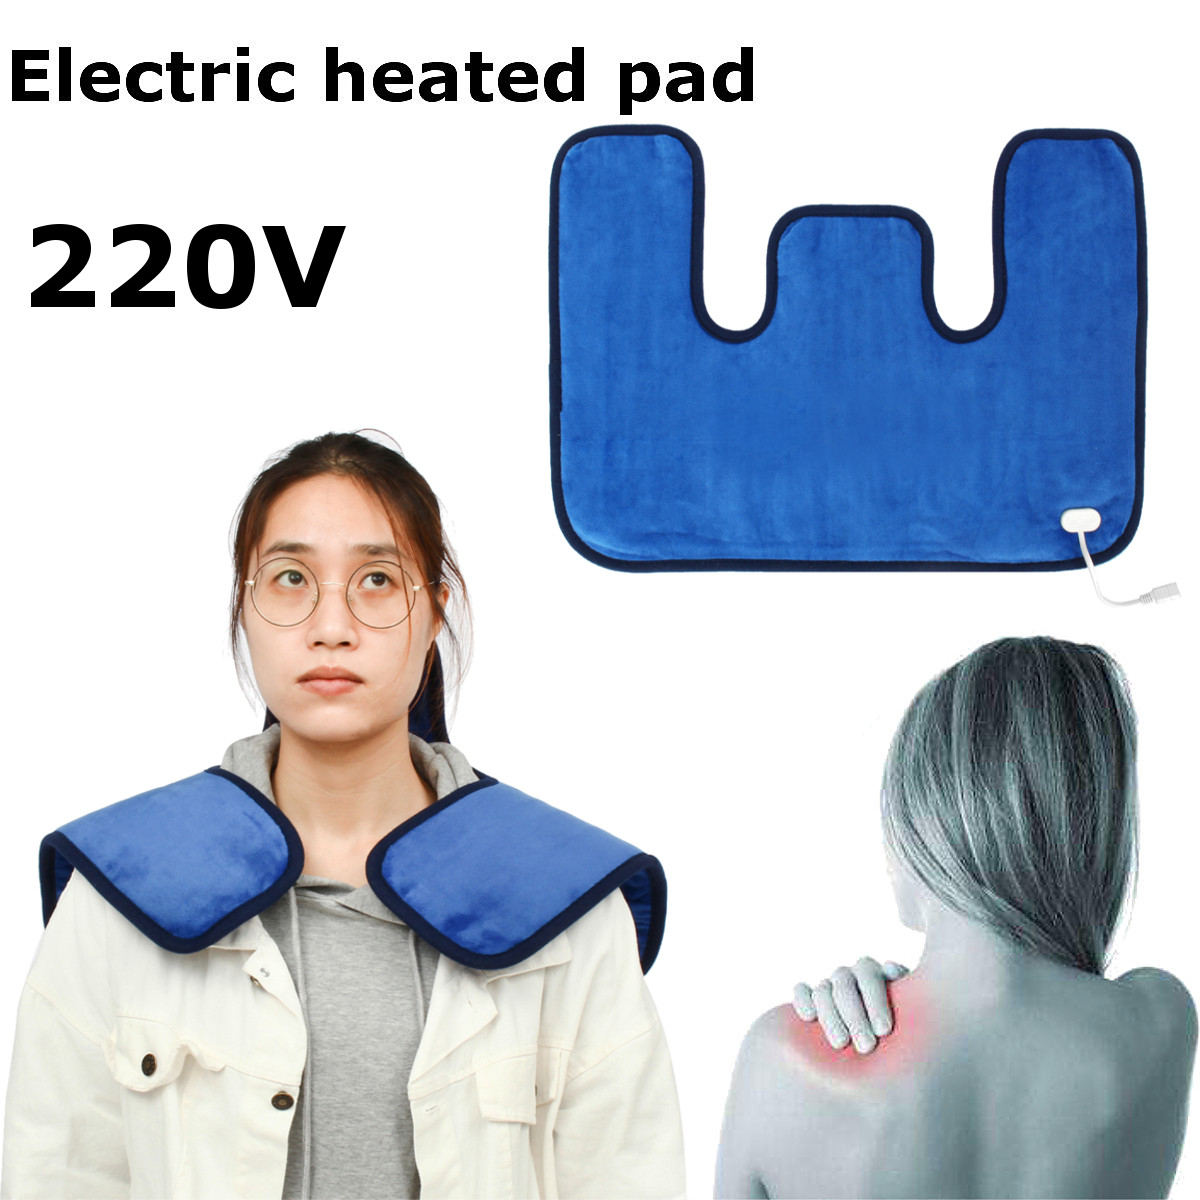 Electric Heating Moxibustion Neck Shoulder Cervical Pad Shawl Massage Blanket Therapy for Relief Pain Body Health CareElectric Heating Moxibustion Neck Shoulder Cervical Pad Shawl Massage Blanket Therapy for Relief Pain Body Health Care